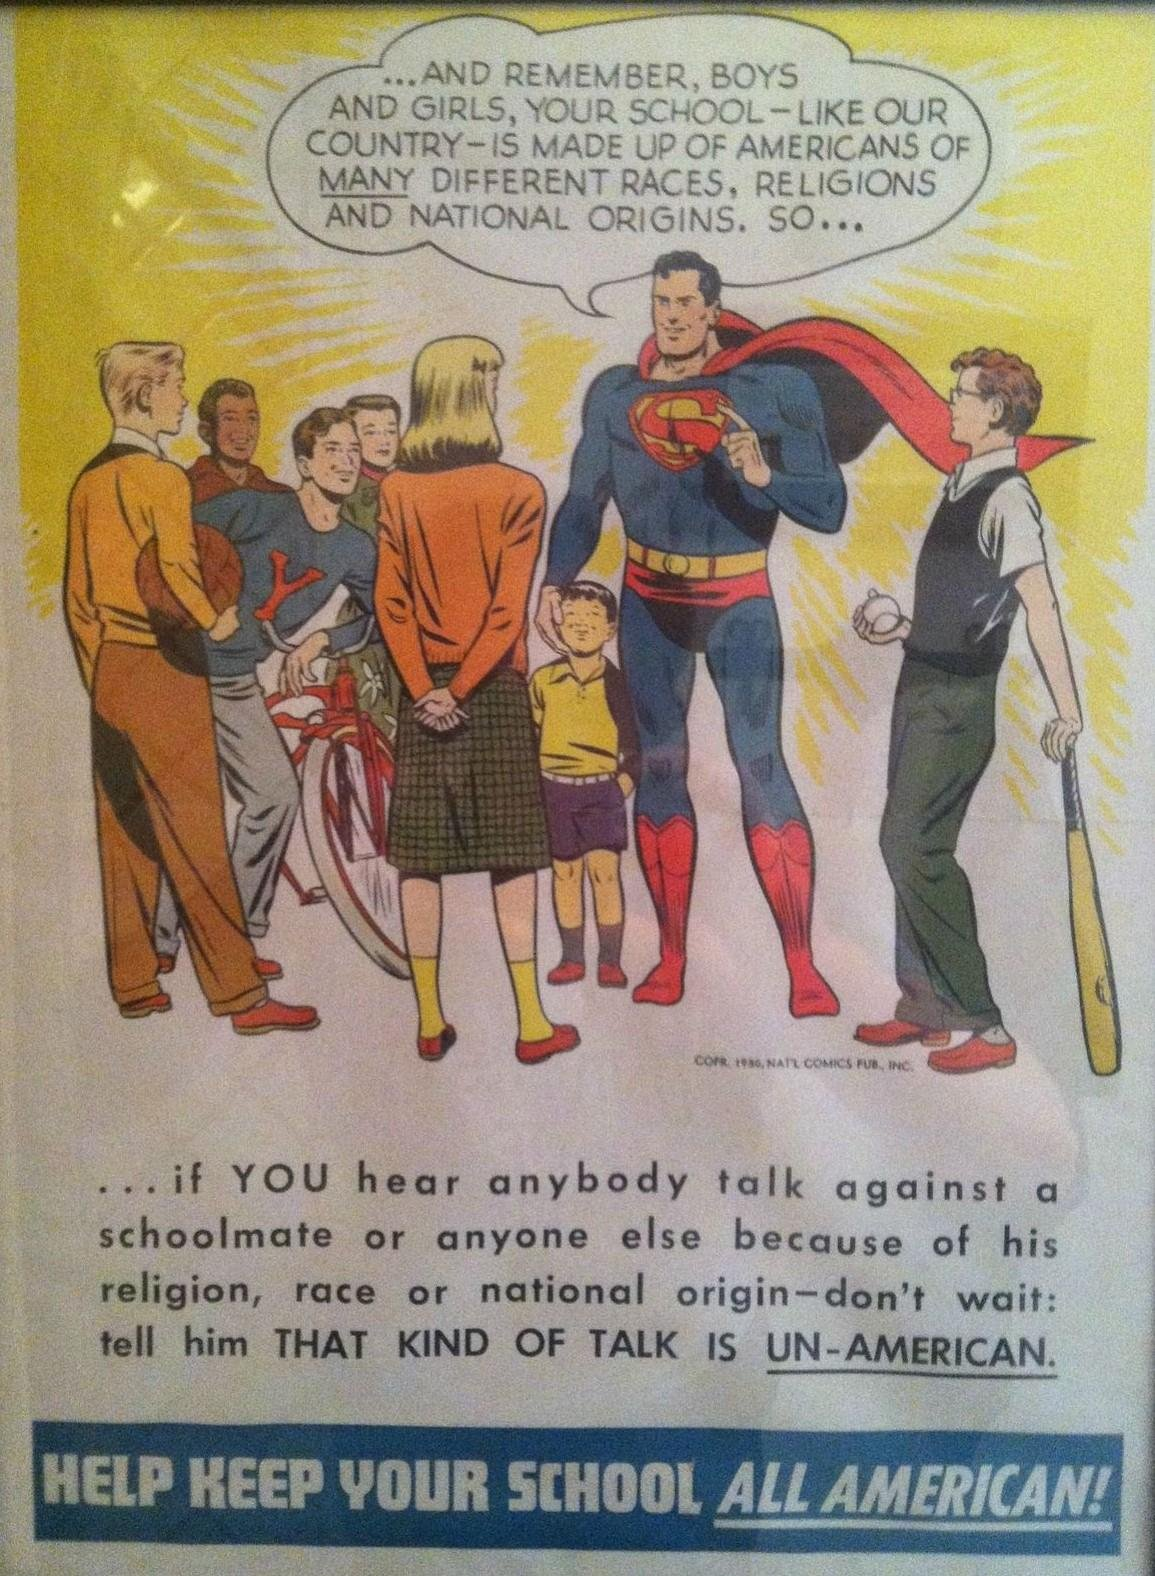 We can learn a lot from 1950s Superman!